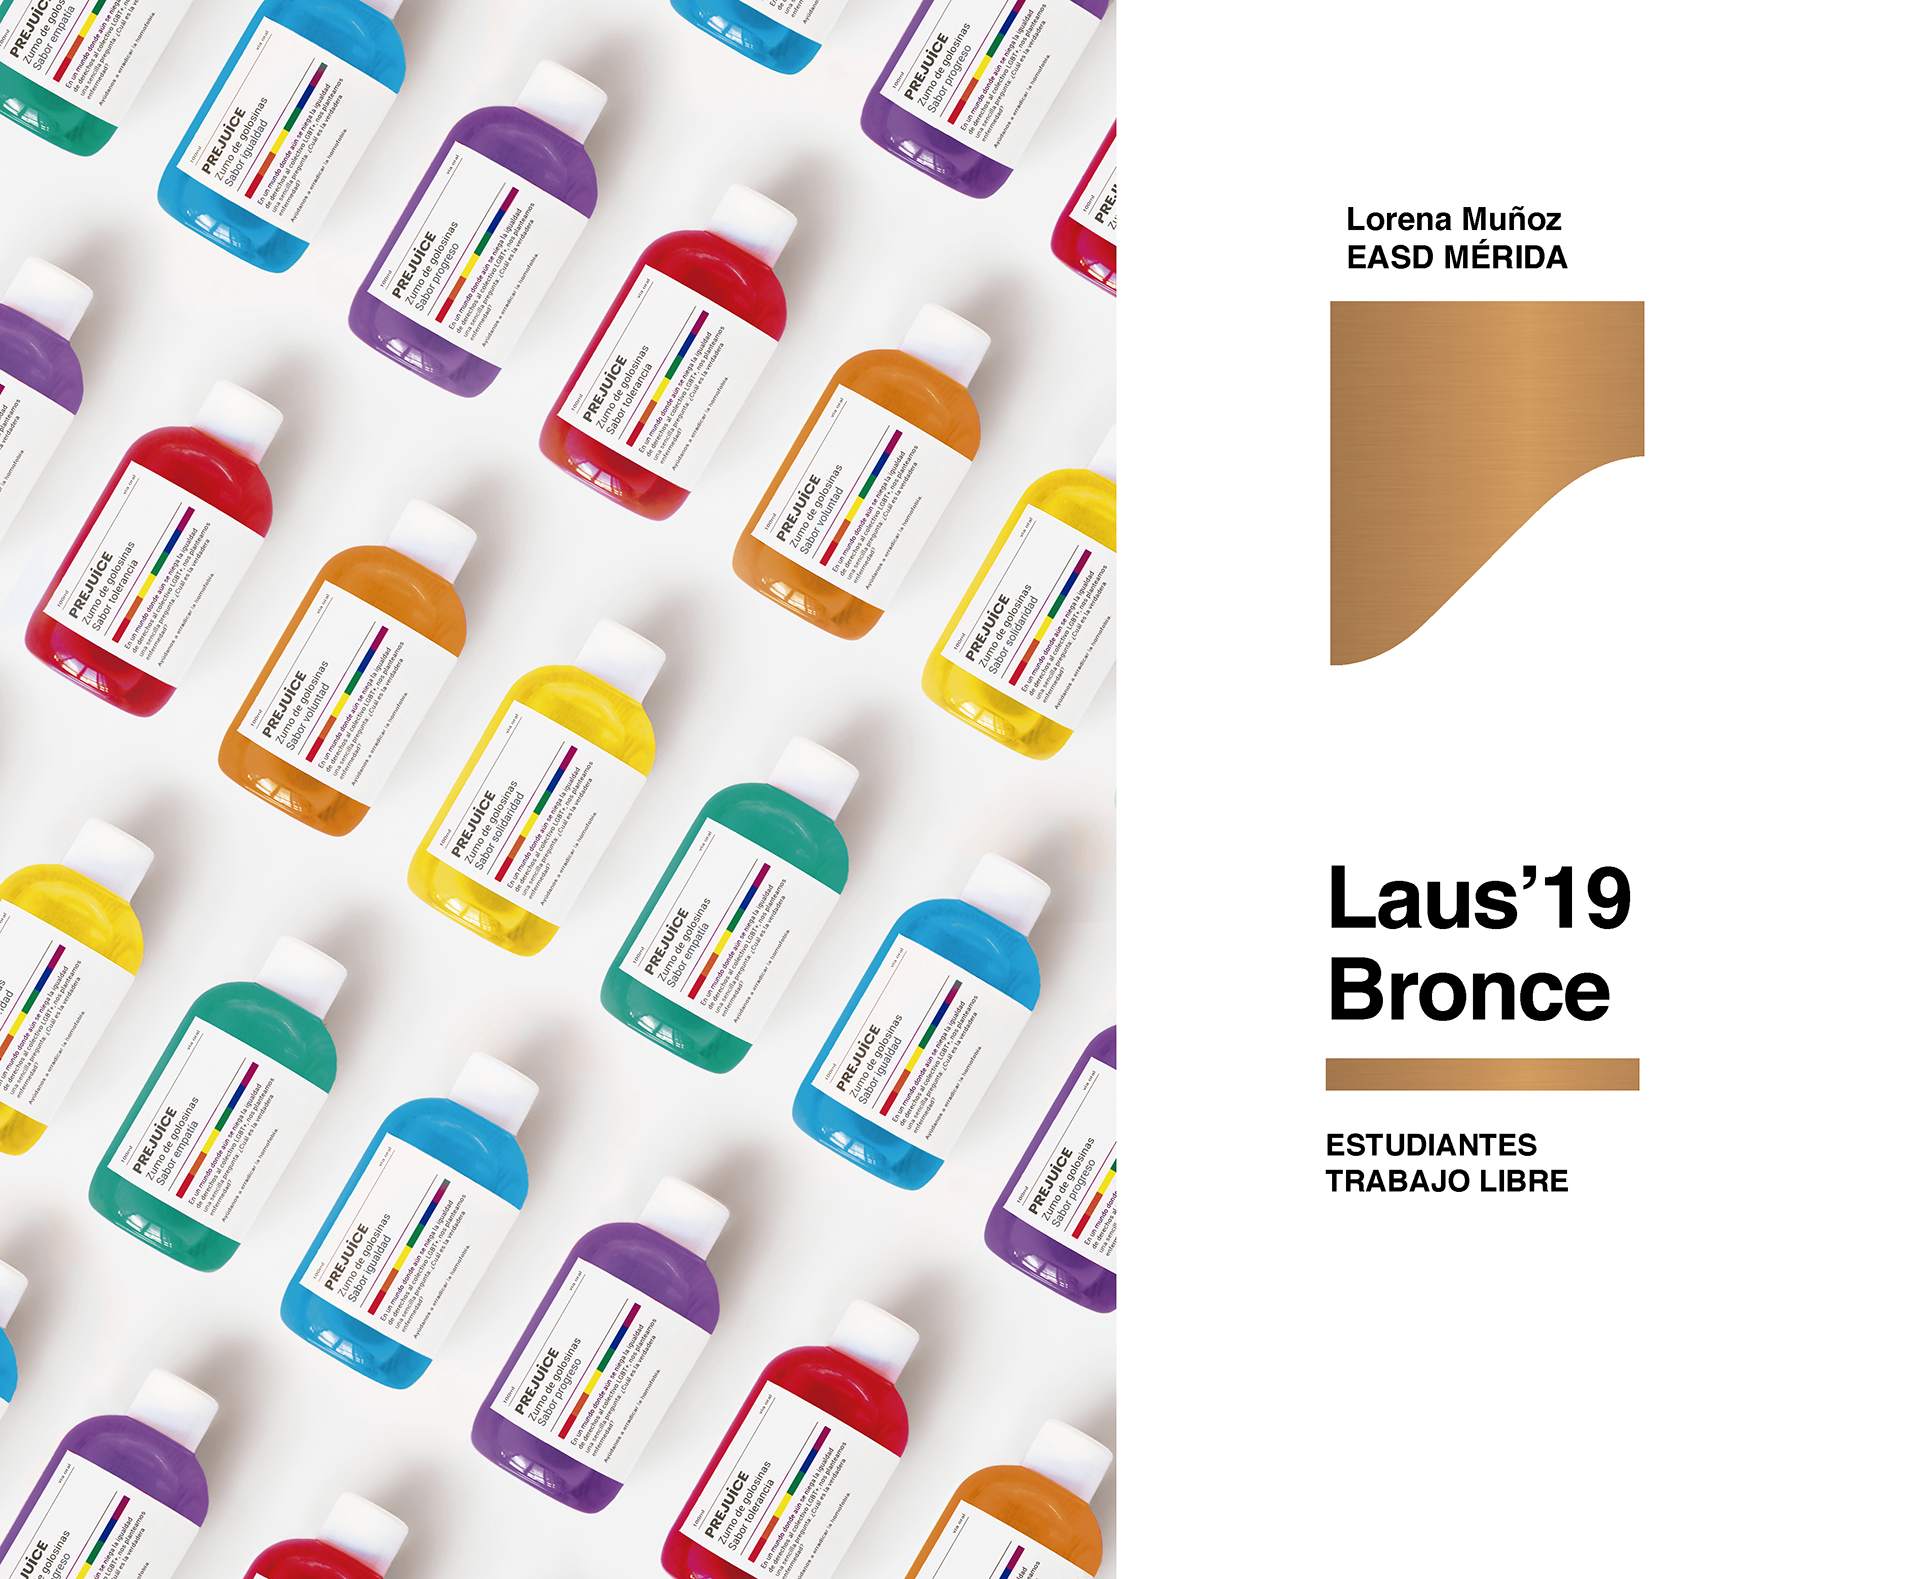 PROMO LAUS BRONCE 2019 3